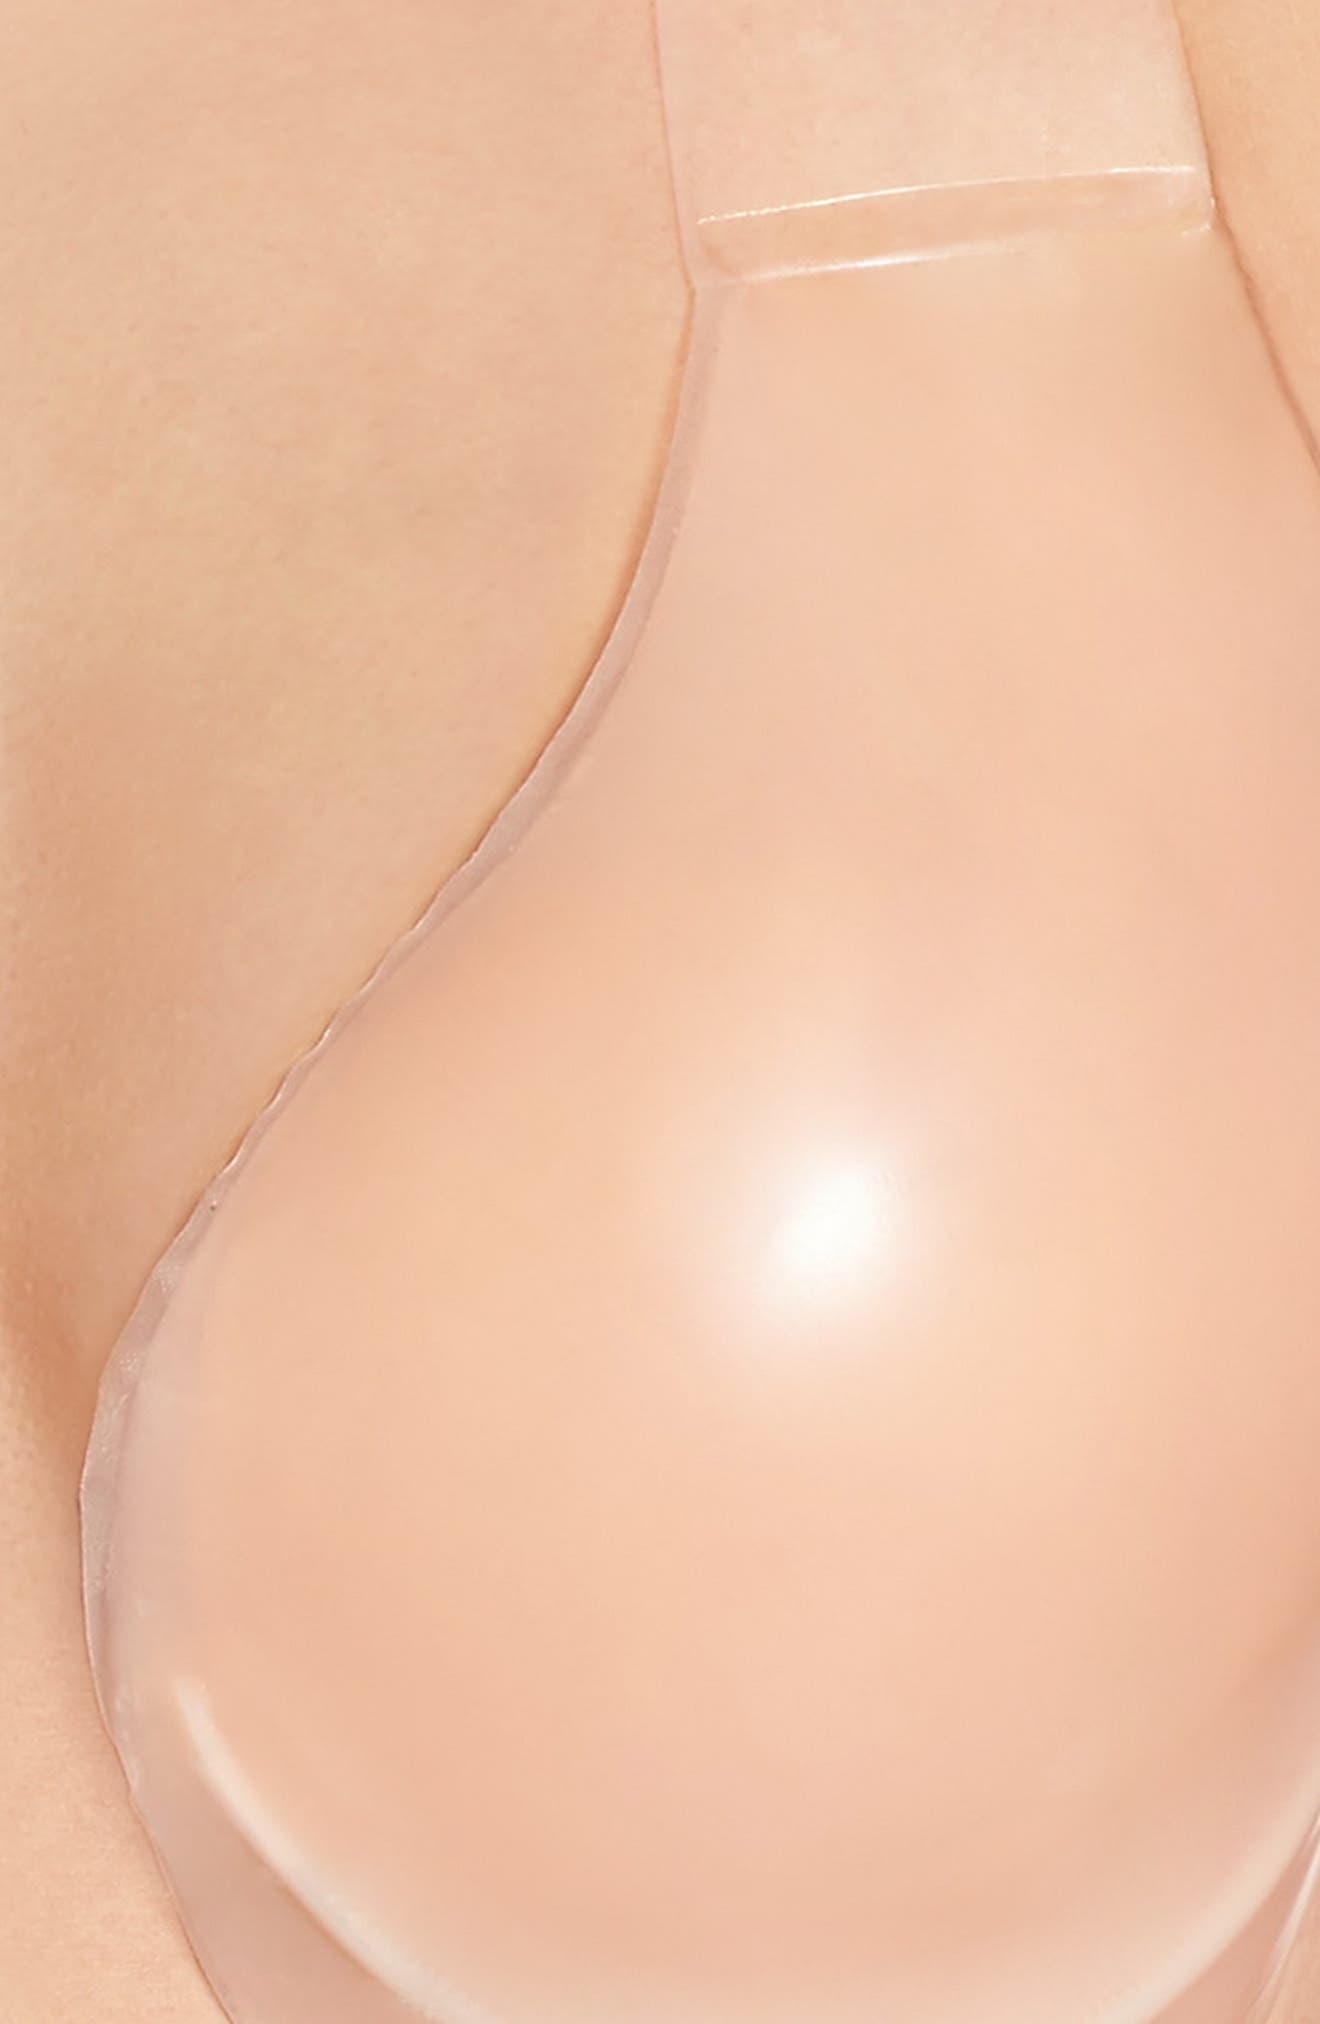 Voluptuous Silicone Lift Bra,                             Alternate thumbnail 4, color,                             NUDE